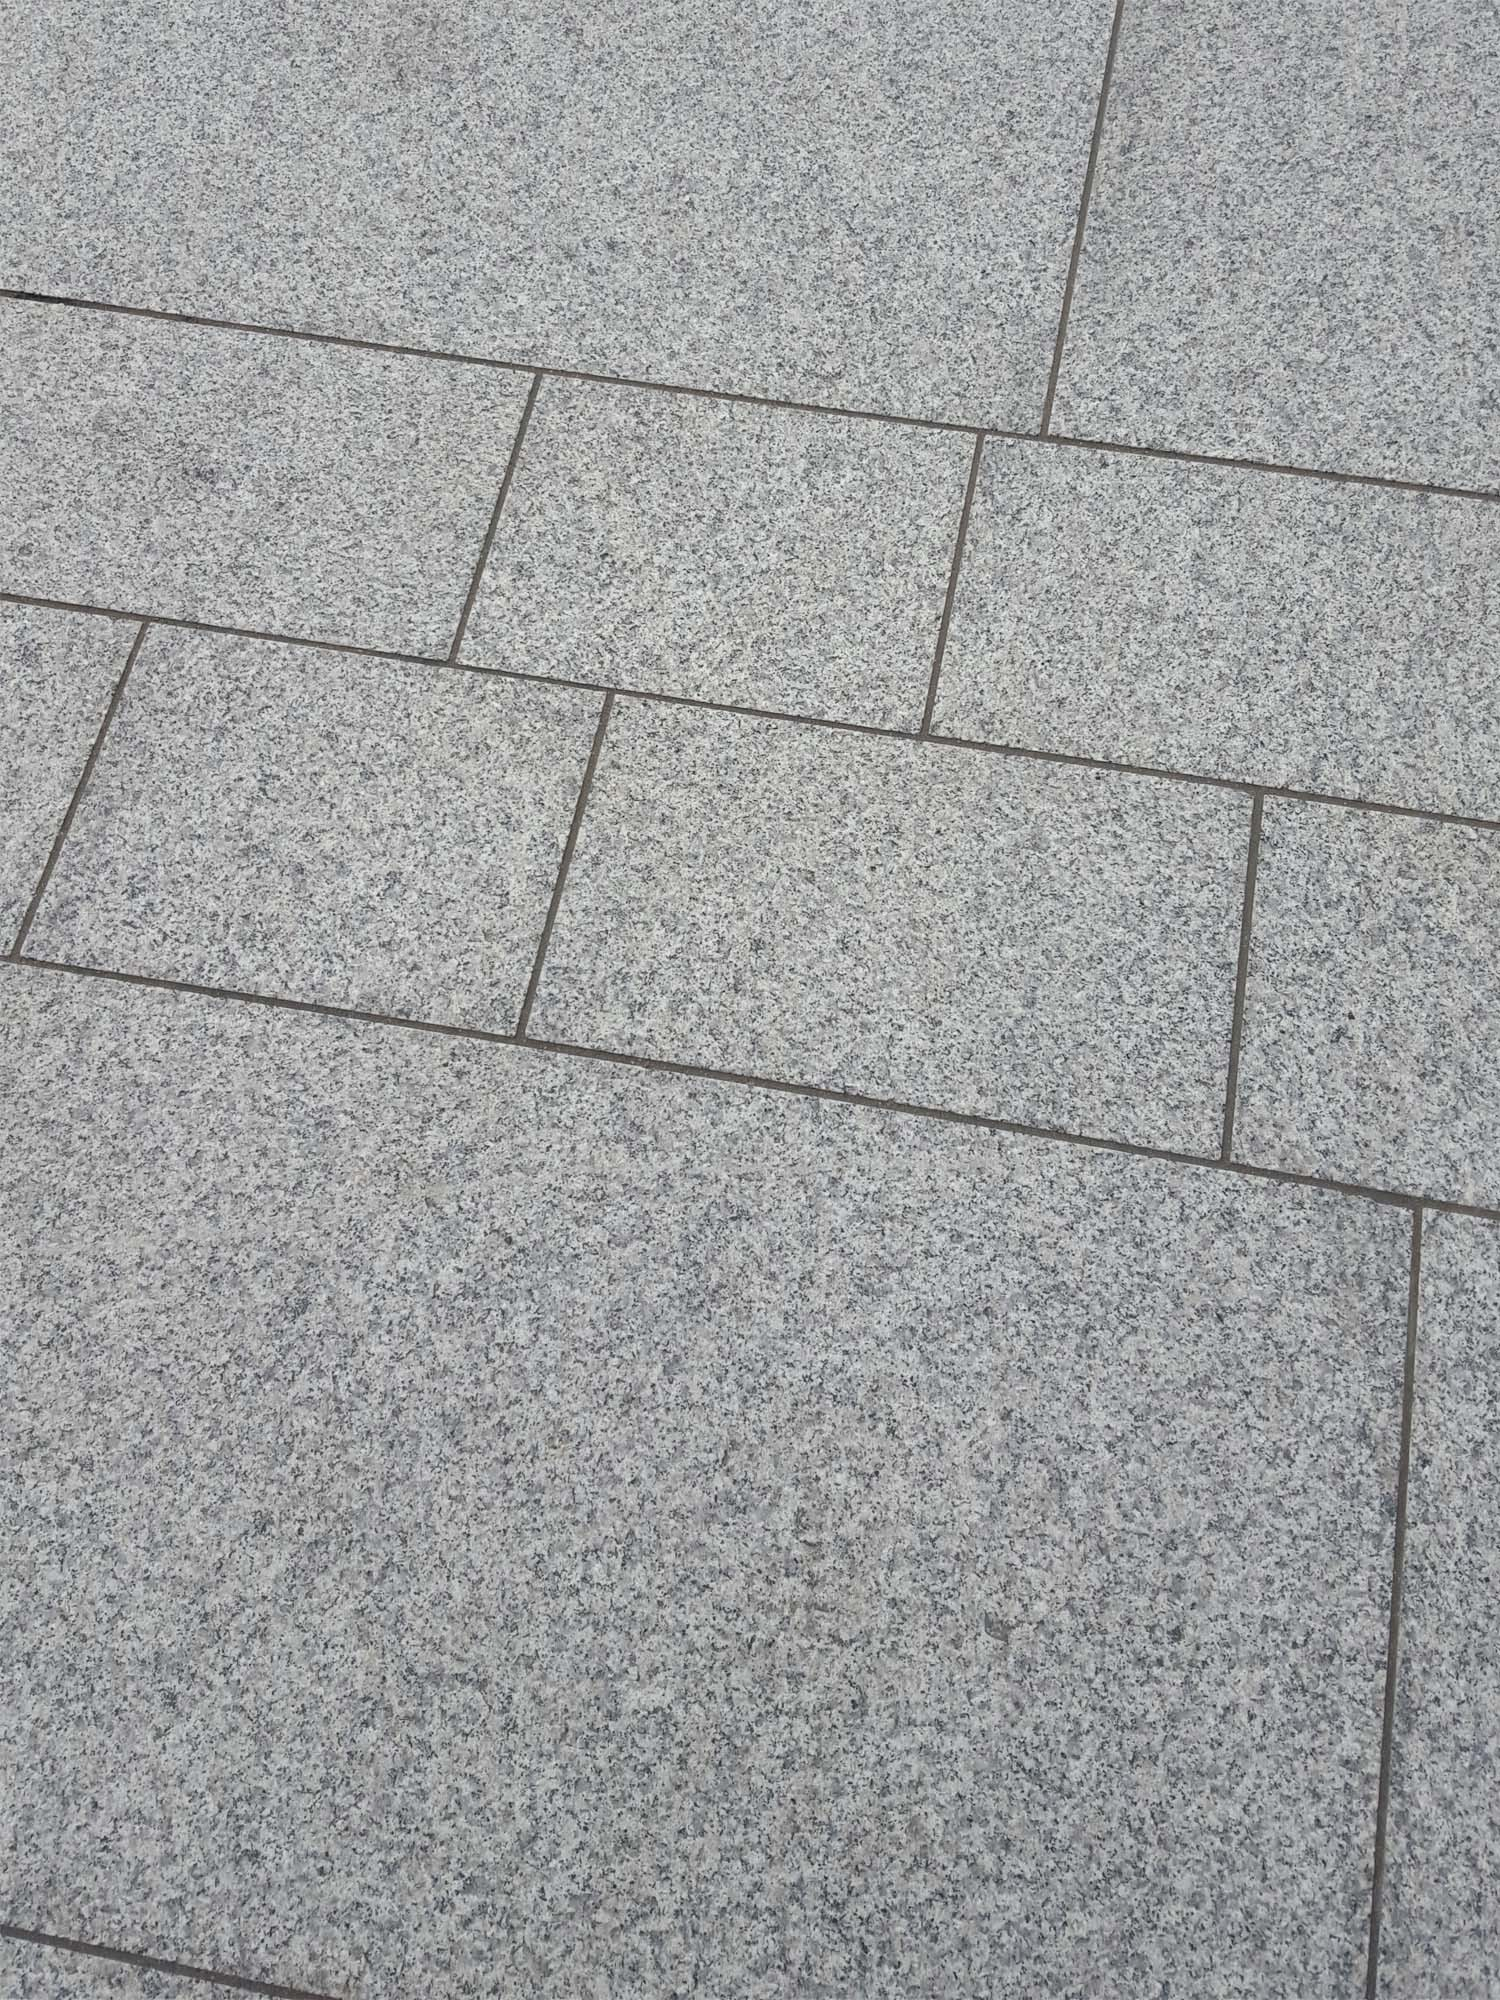 Grey Granite Slabs : Light grey granite paving silver patio slabs